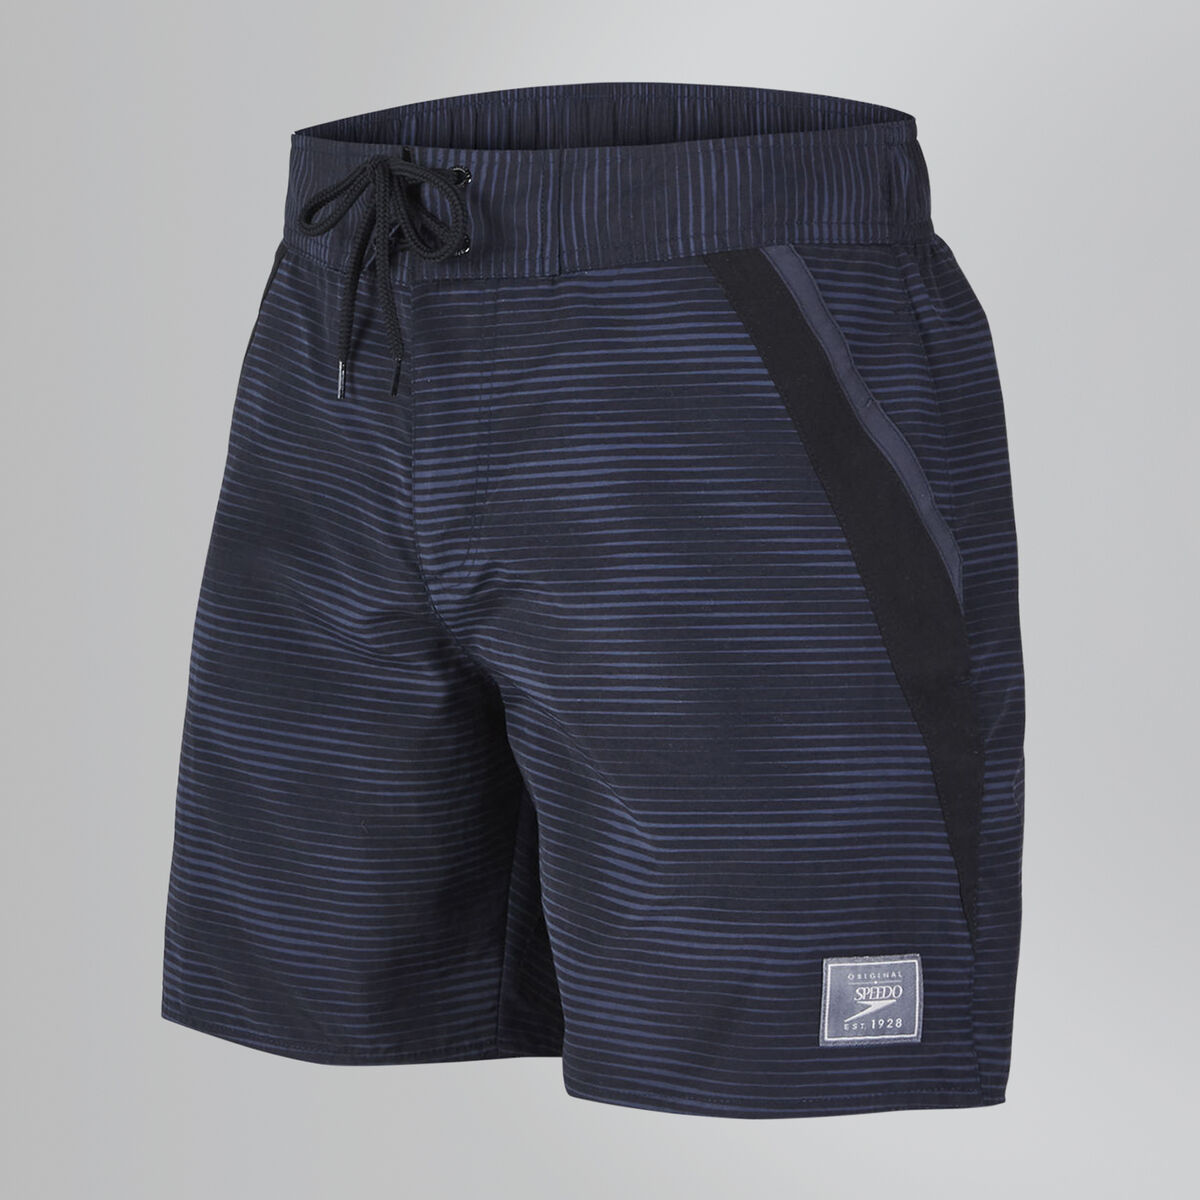 Marlinwave Retro Leisure Swim Short